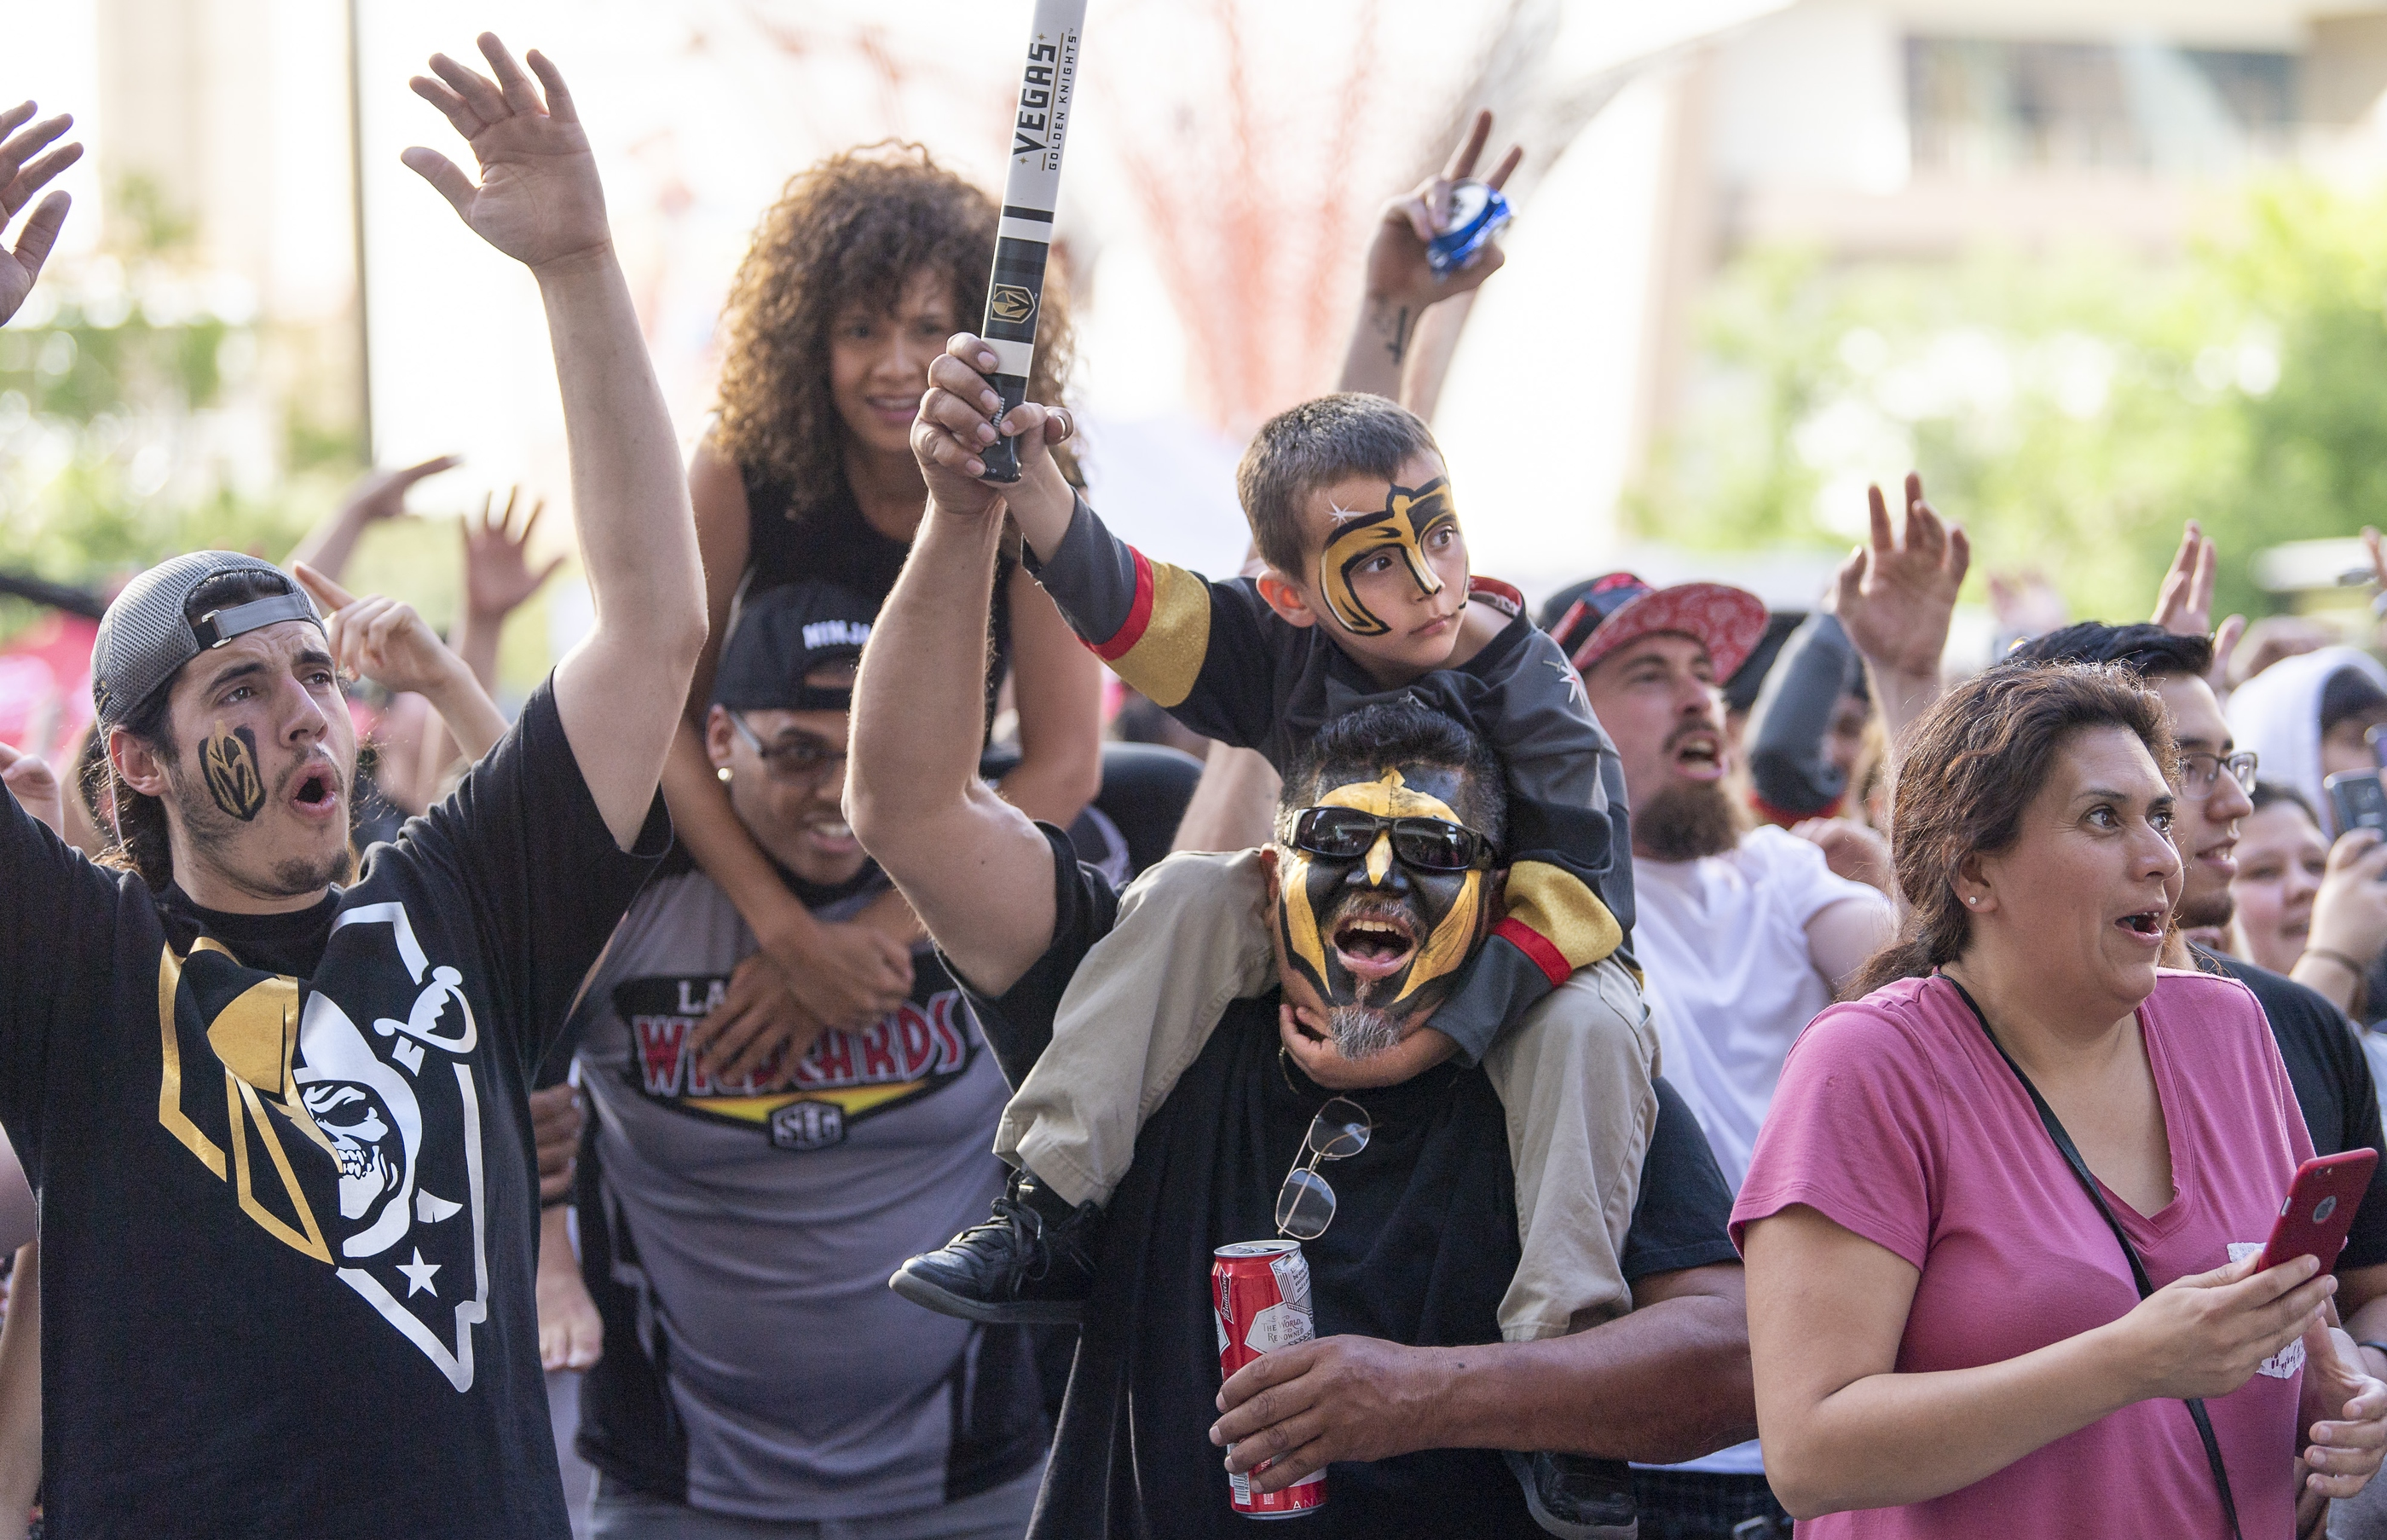 Fans enjoy the pre-game celebration in Toshiba Plaza as the Vegas Golden Knights prepare to meet the Los Angeles Kings in the first quarterfinal game of the NHL Stanley Cup Playoffs at T-Mobile Arena in Las Vegas on Wednesday, April 11, 2018.  CREDIT: Mark Damon/Las Vegas News Bureau